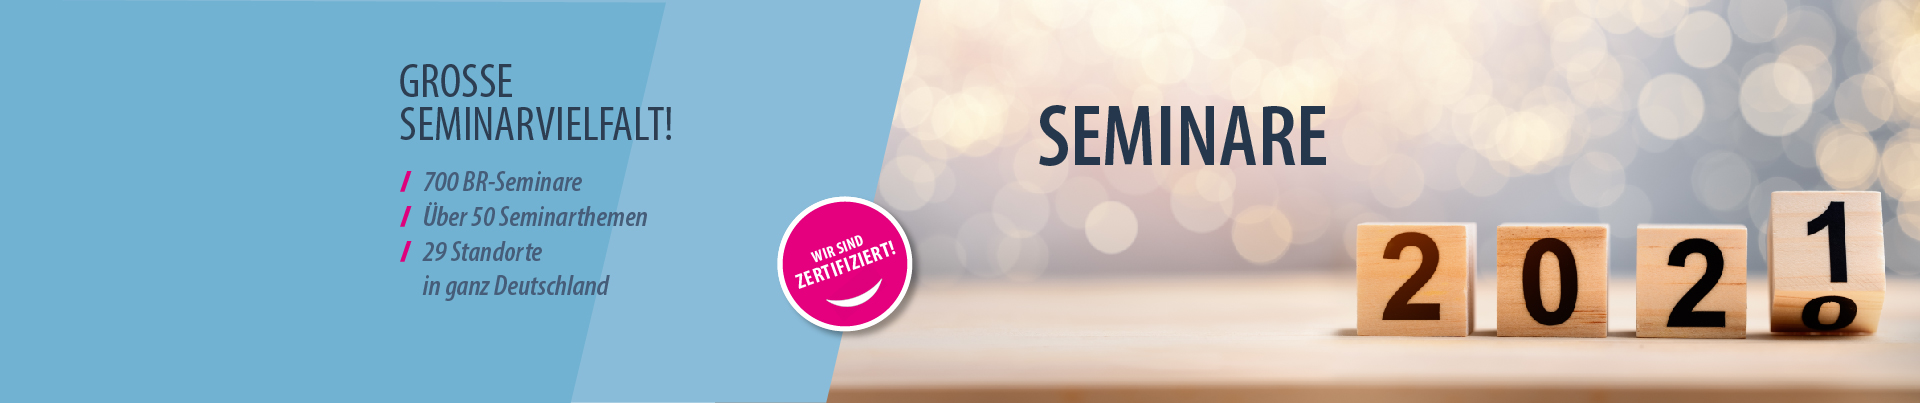 Slider_Seminarvielfalt-01